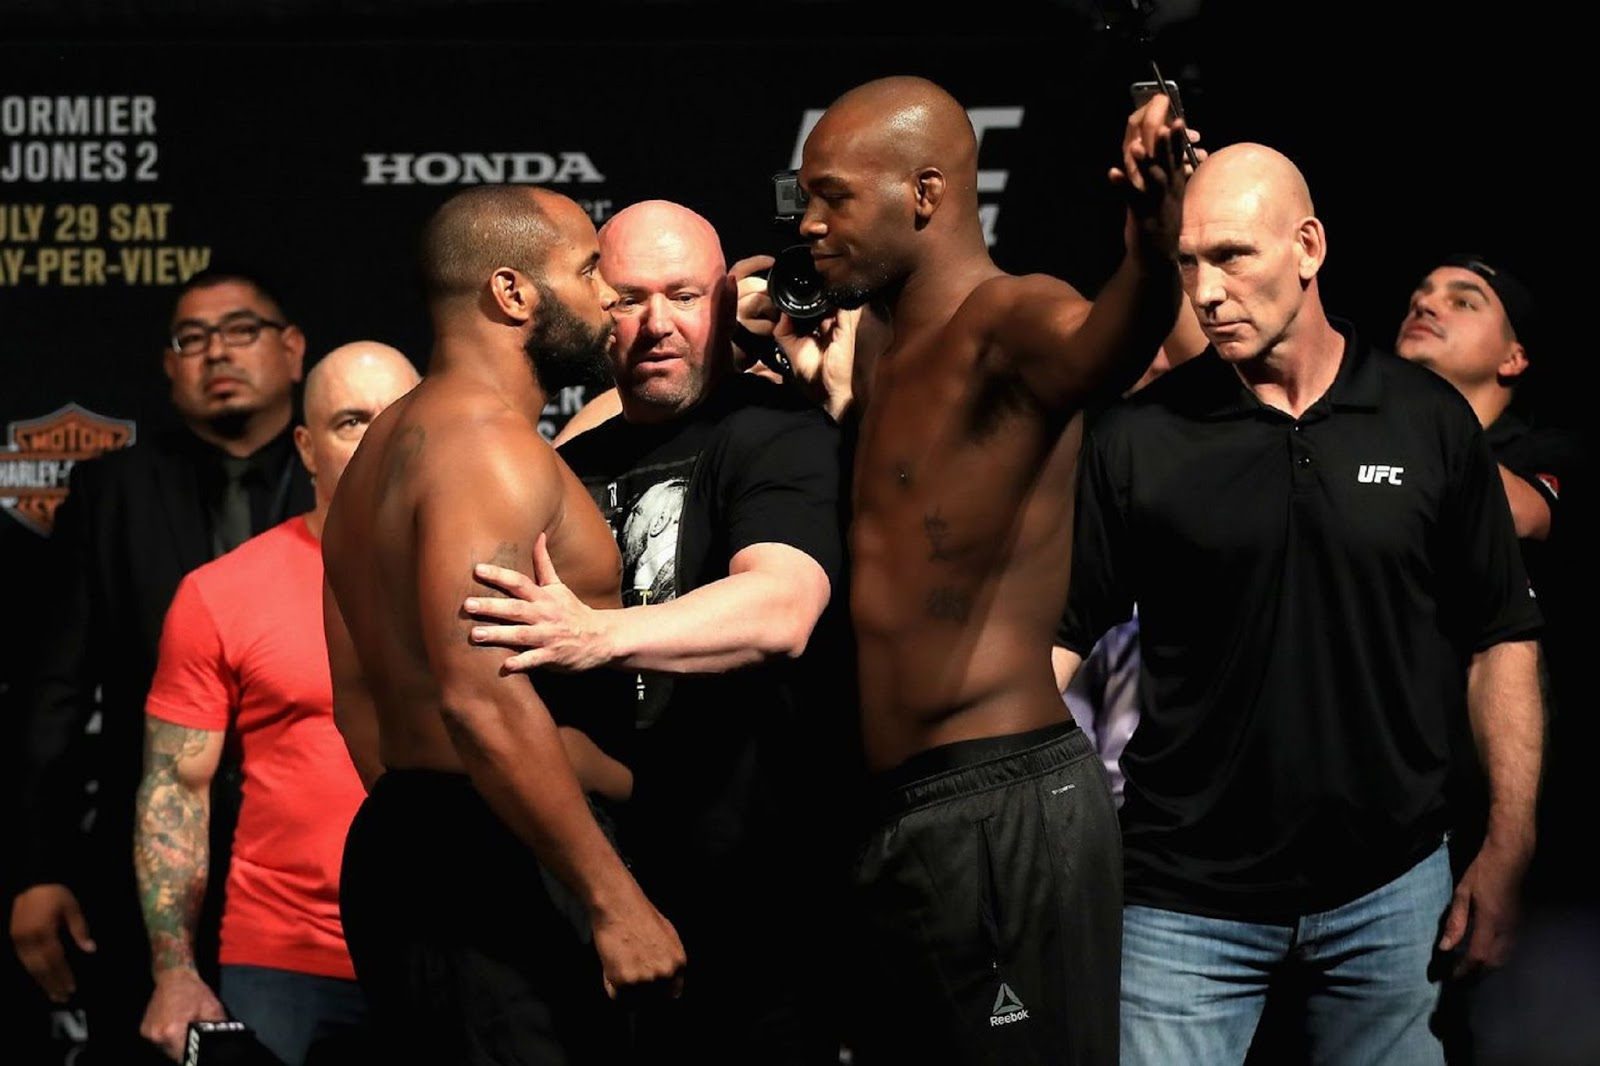 DANIEL CORMIER VS. JON JONES 2